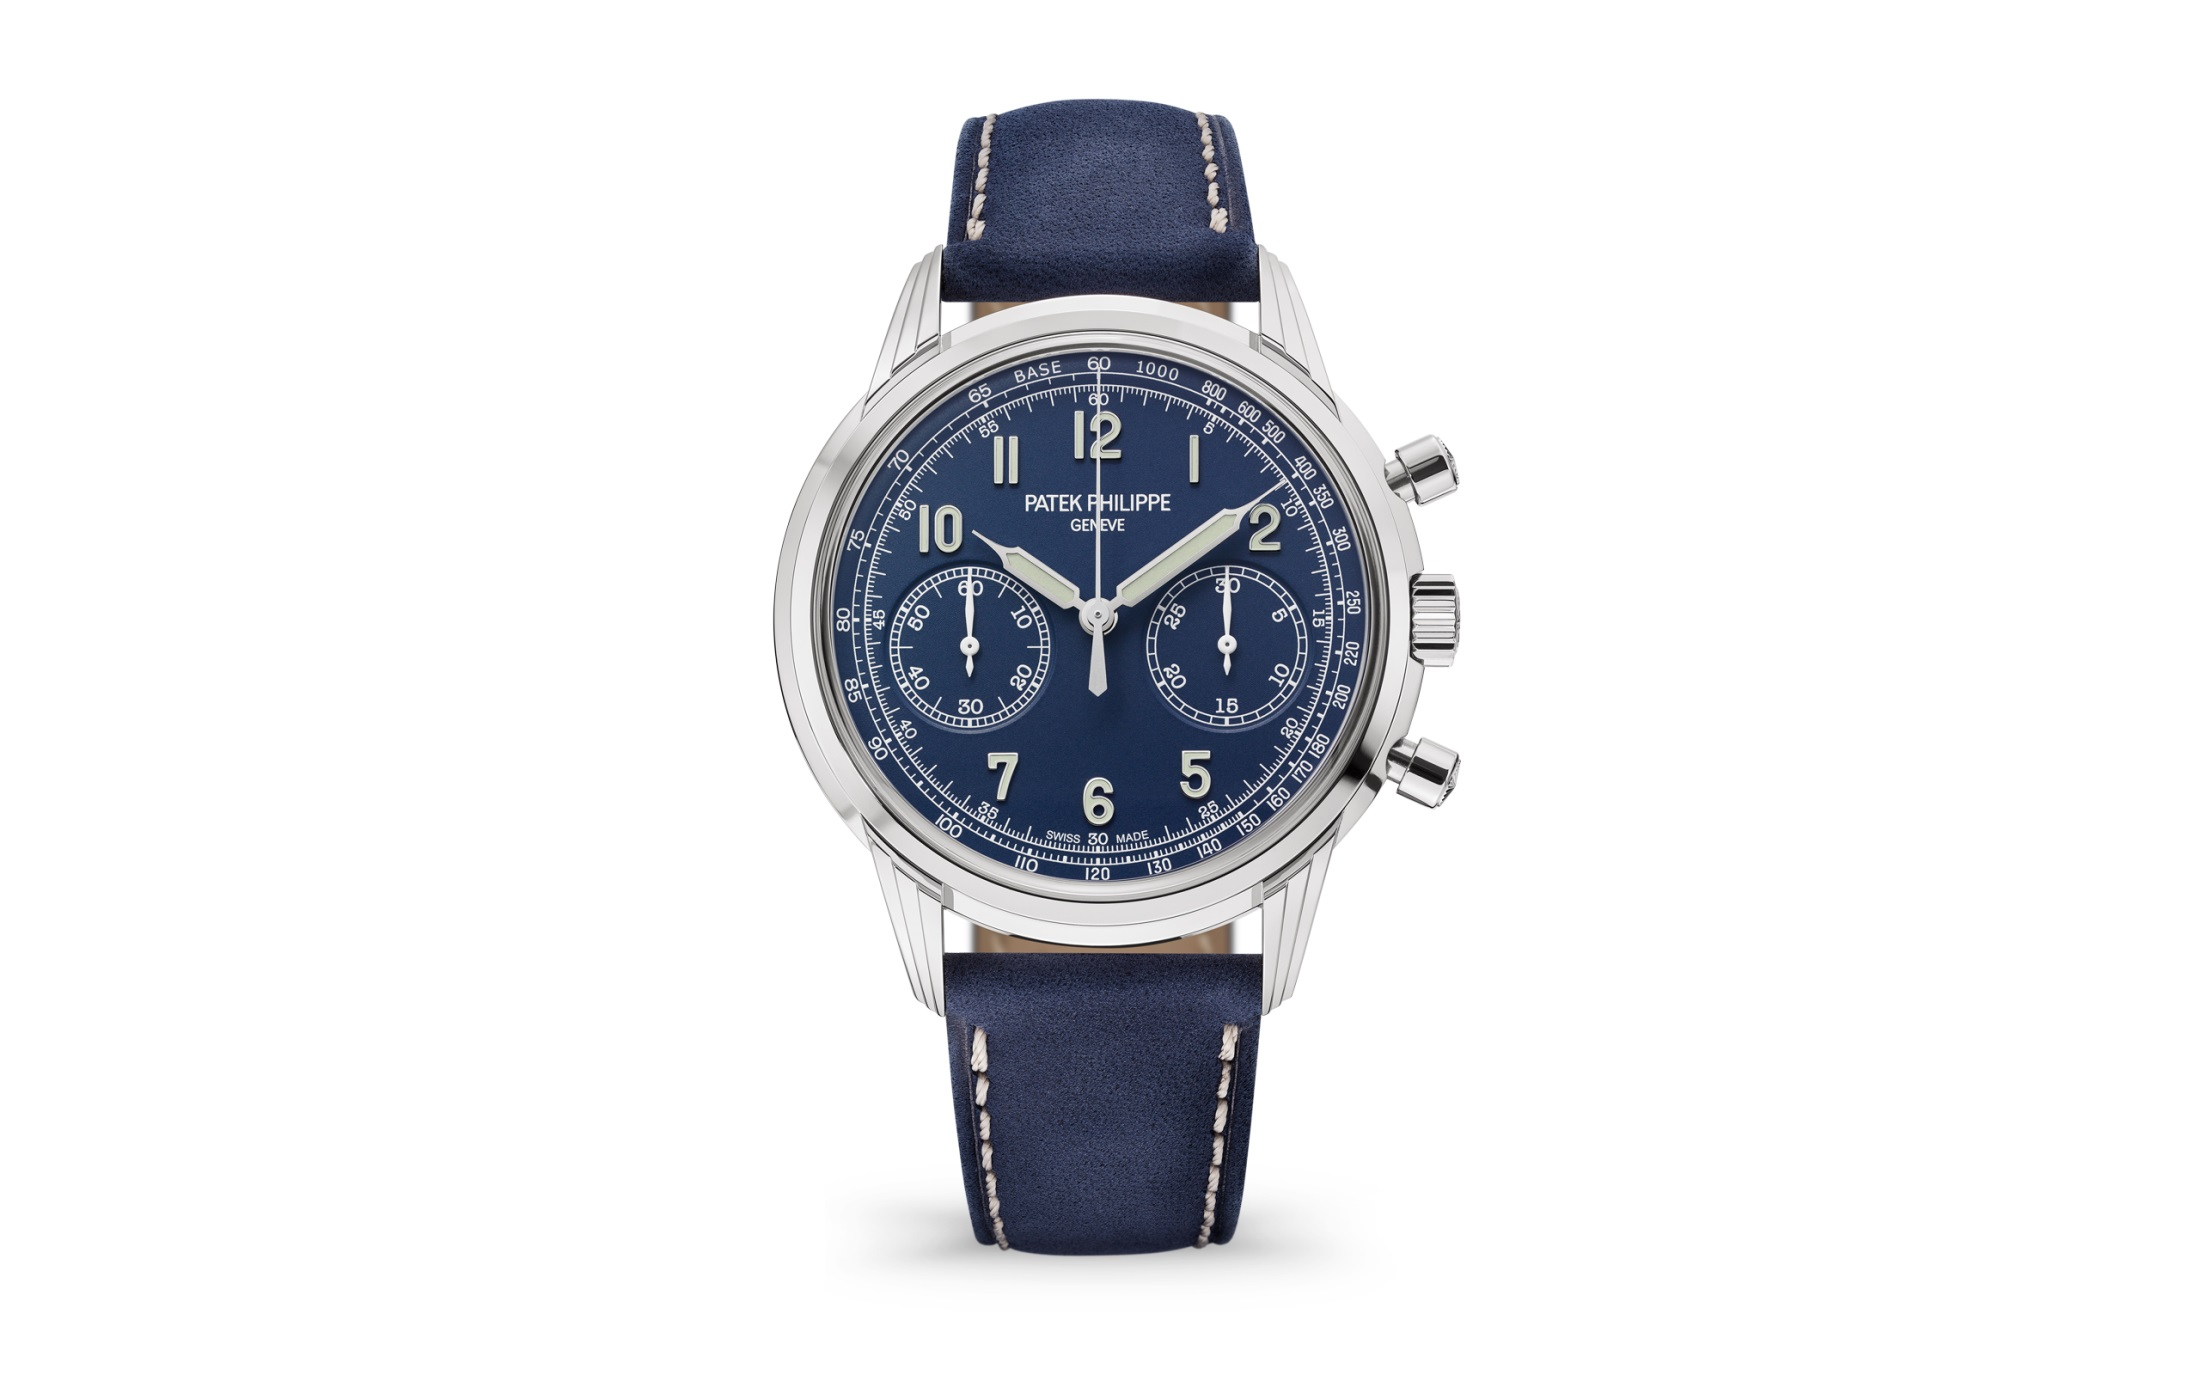 Patek Philippe Chronograph 5172G, Chronograph Watches, Automatic Watch, Leather Strap, Swiss Watch